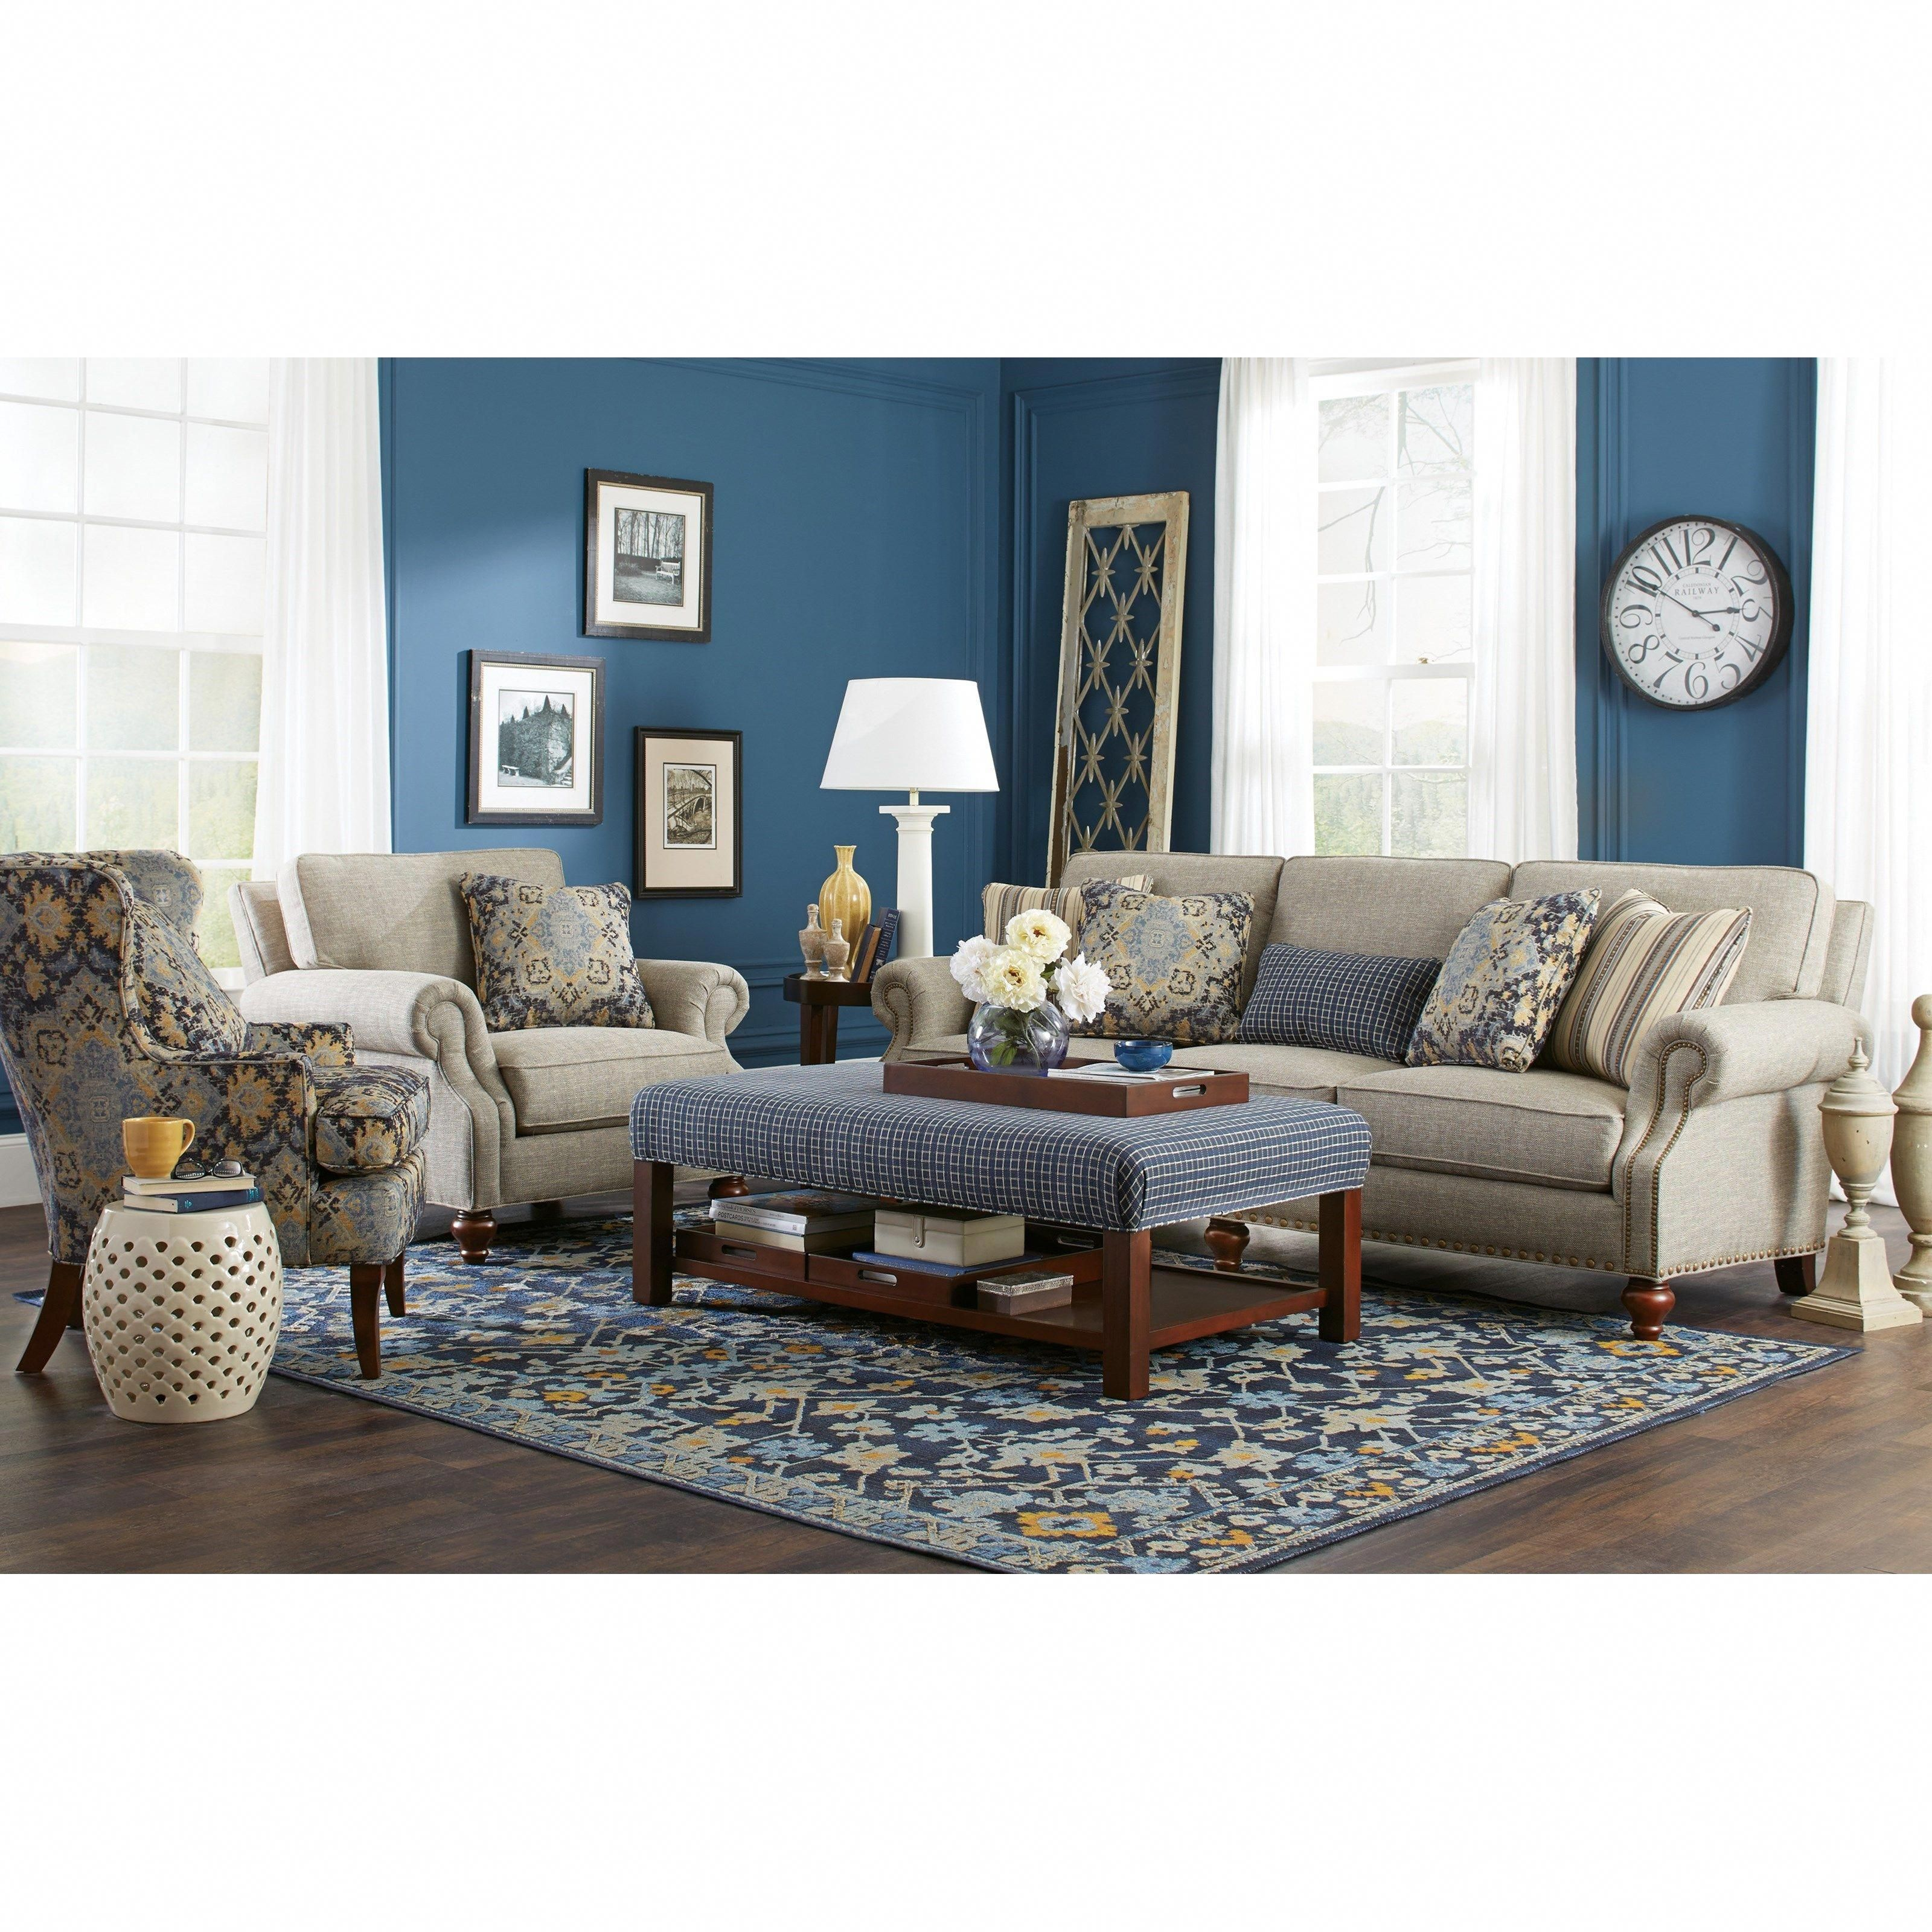 762300 Living Room Group By Craftmaster At Olinde S Furniture